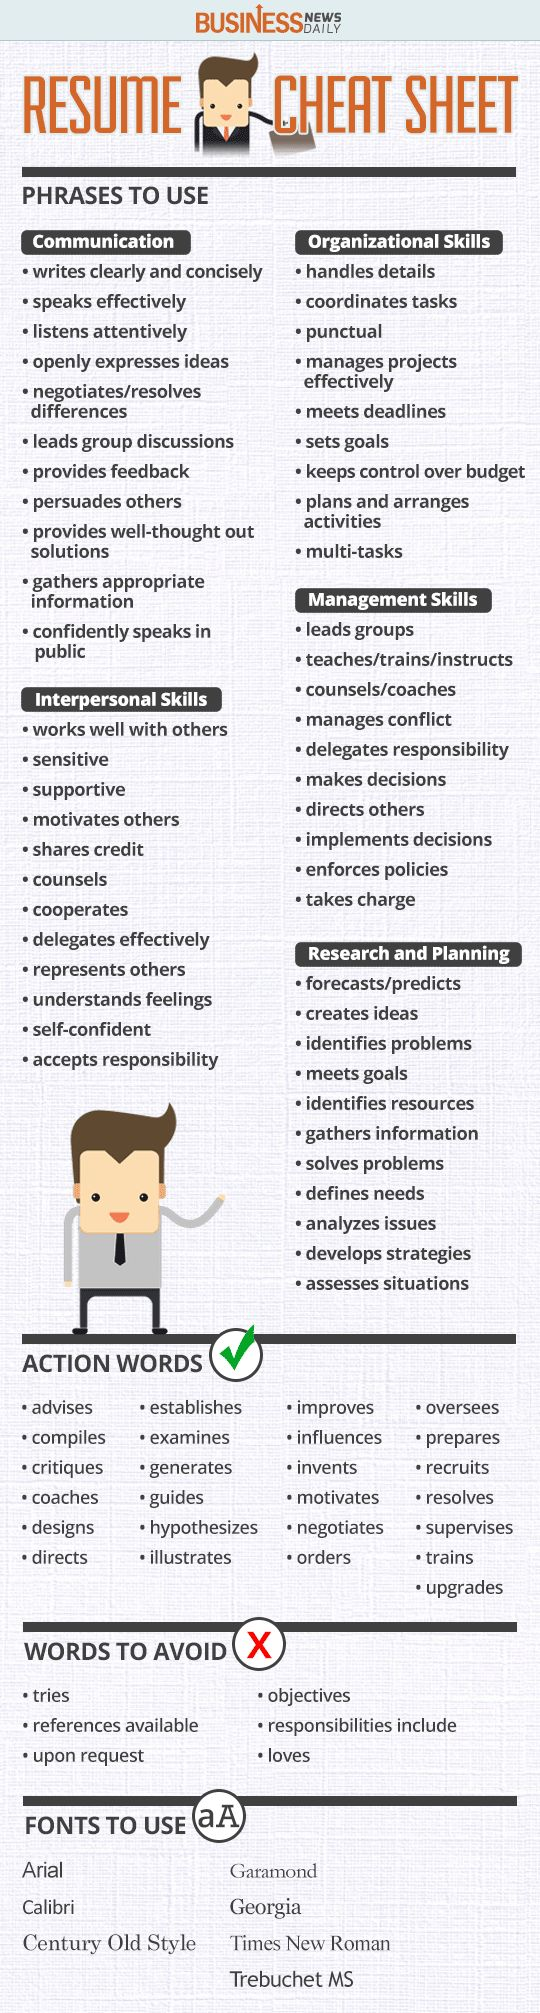 Opposenewapstandardsus  Stunning  Ideas About Resume On Pinterest  Cv Format Resume Cv And  With Marvelous Resume Cheat Sheet Infographic Andrews Almost Done With A Complete Unit On Employment Which With Adorable Sample Resume References Also Absolutely Free Resume In Addition Resume Samples For Administrative Assistant And How To Create A Perfect Resume As Well As Cfa Candidate Resume Additionally Clinical Pharmacist Resume From Pinterestcom With Opposenewapstandardsus  Marvelous  Ideas About Resume On Pinterest  Cv Format Resume Cv And  With Adorable Resume Cheat Sheet Infographic Andrews Almost Done With A Complete Unit On Employment Which And Stunning Sample Resume References Also Absolutely Free Resume In Addition Resume Samples For Administrative Assistant From Pinterestcom